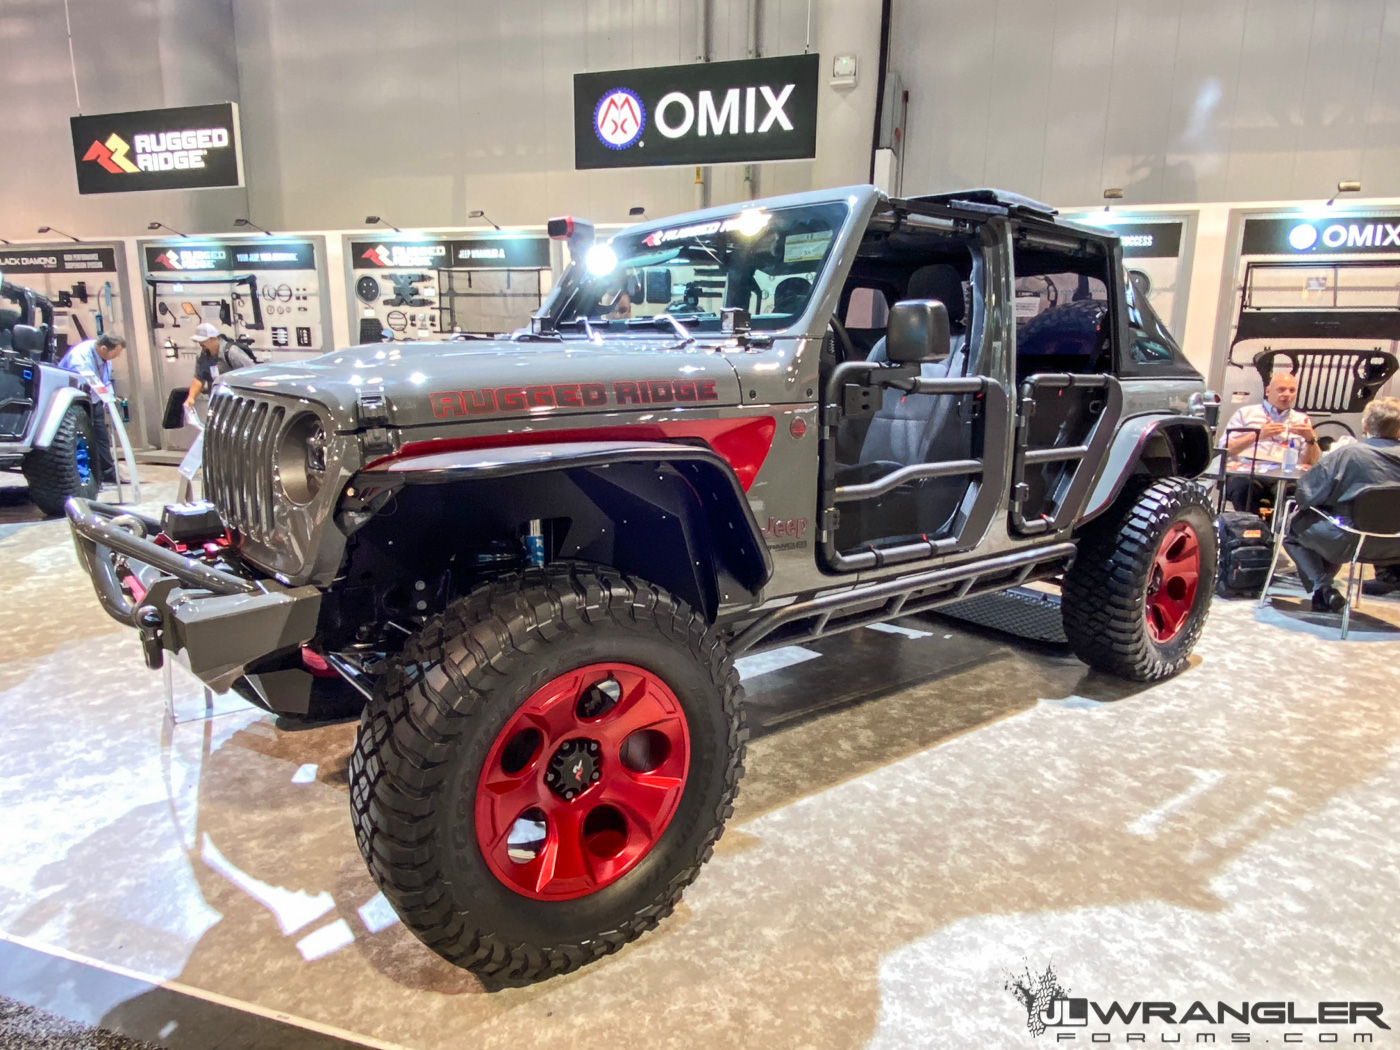 Rugged-Ridge-JLU-Jeep-Wrangler-SEMA-Build-6.jpg